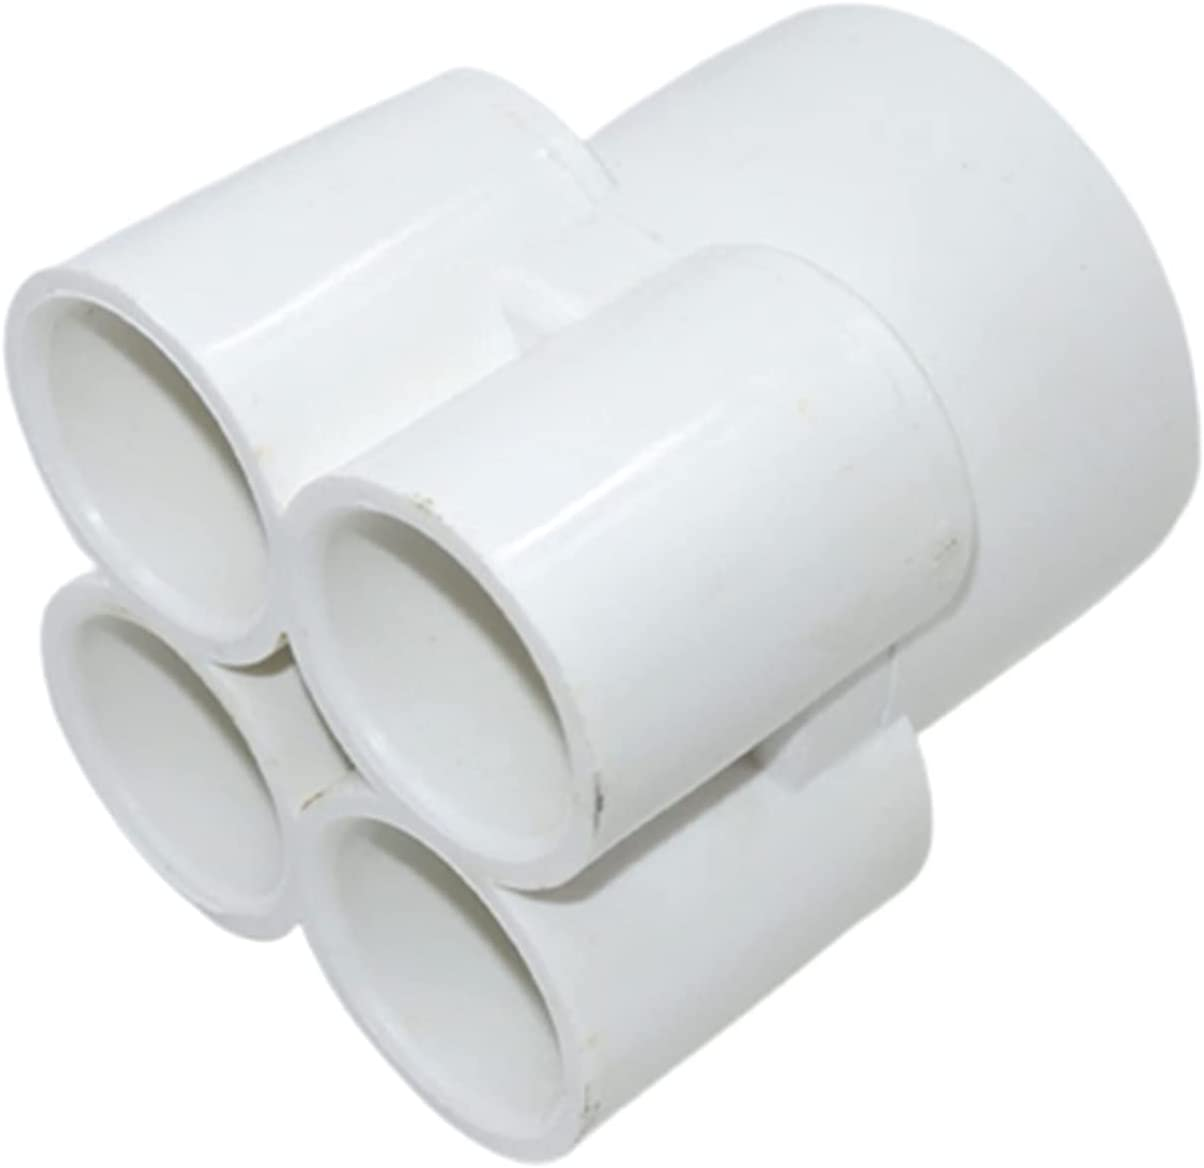 LUANAYUN-Bath Accessories 4 Our shop most popular Holes Plastic Charlotte Mall Mas Distributor Water